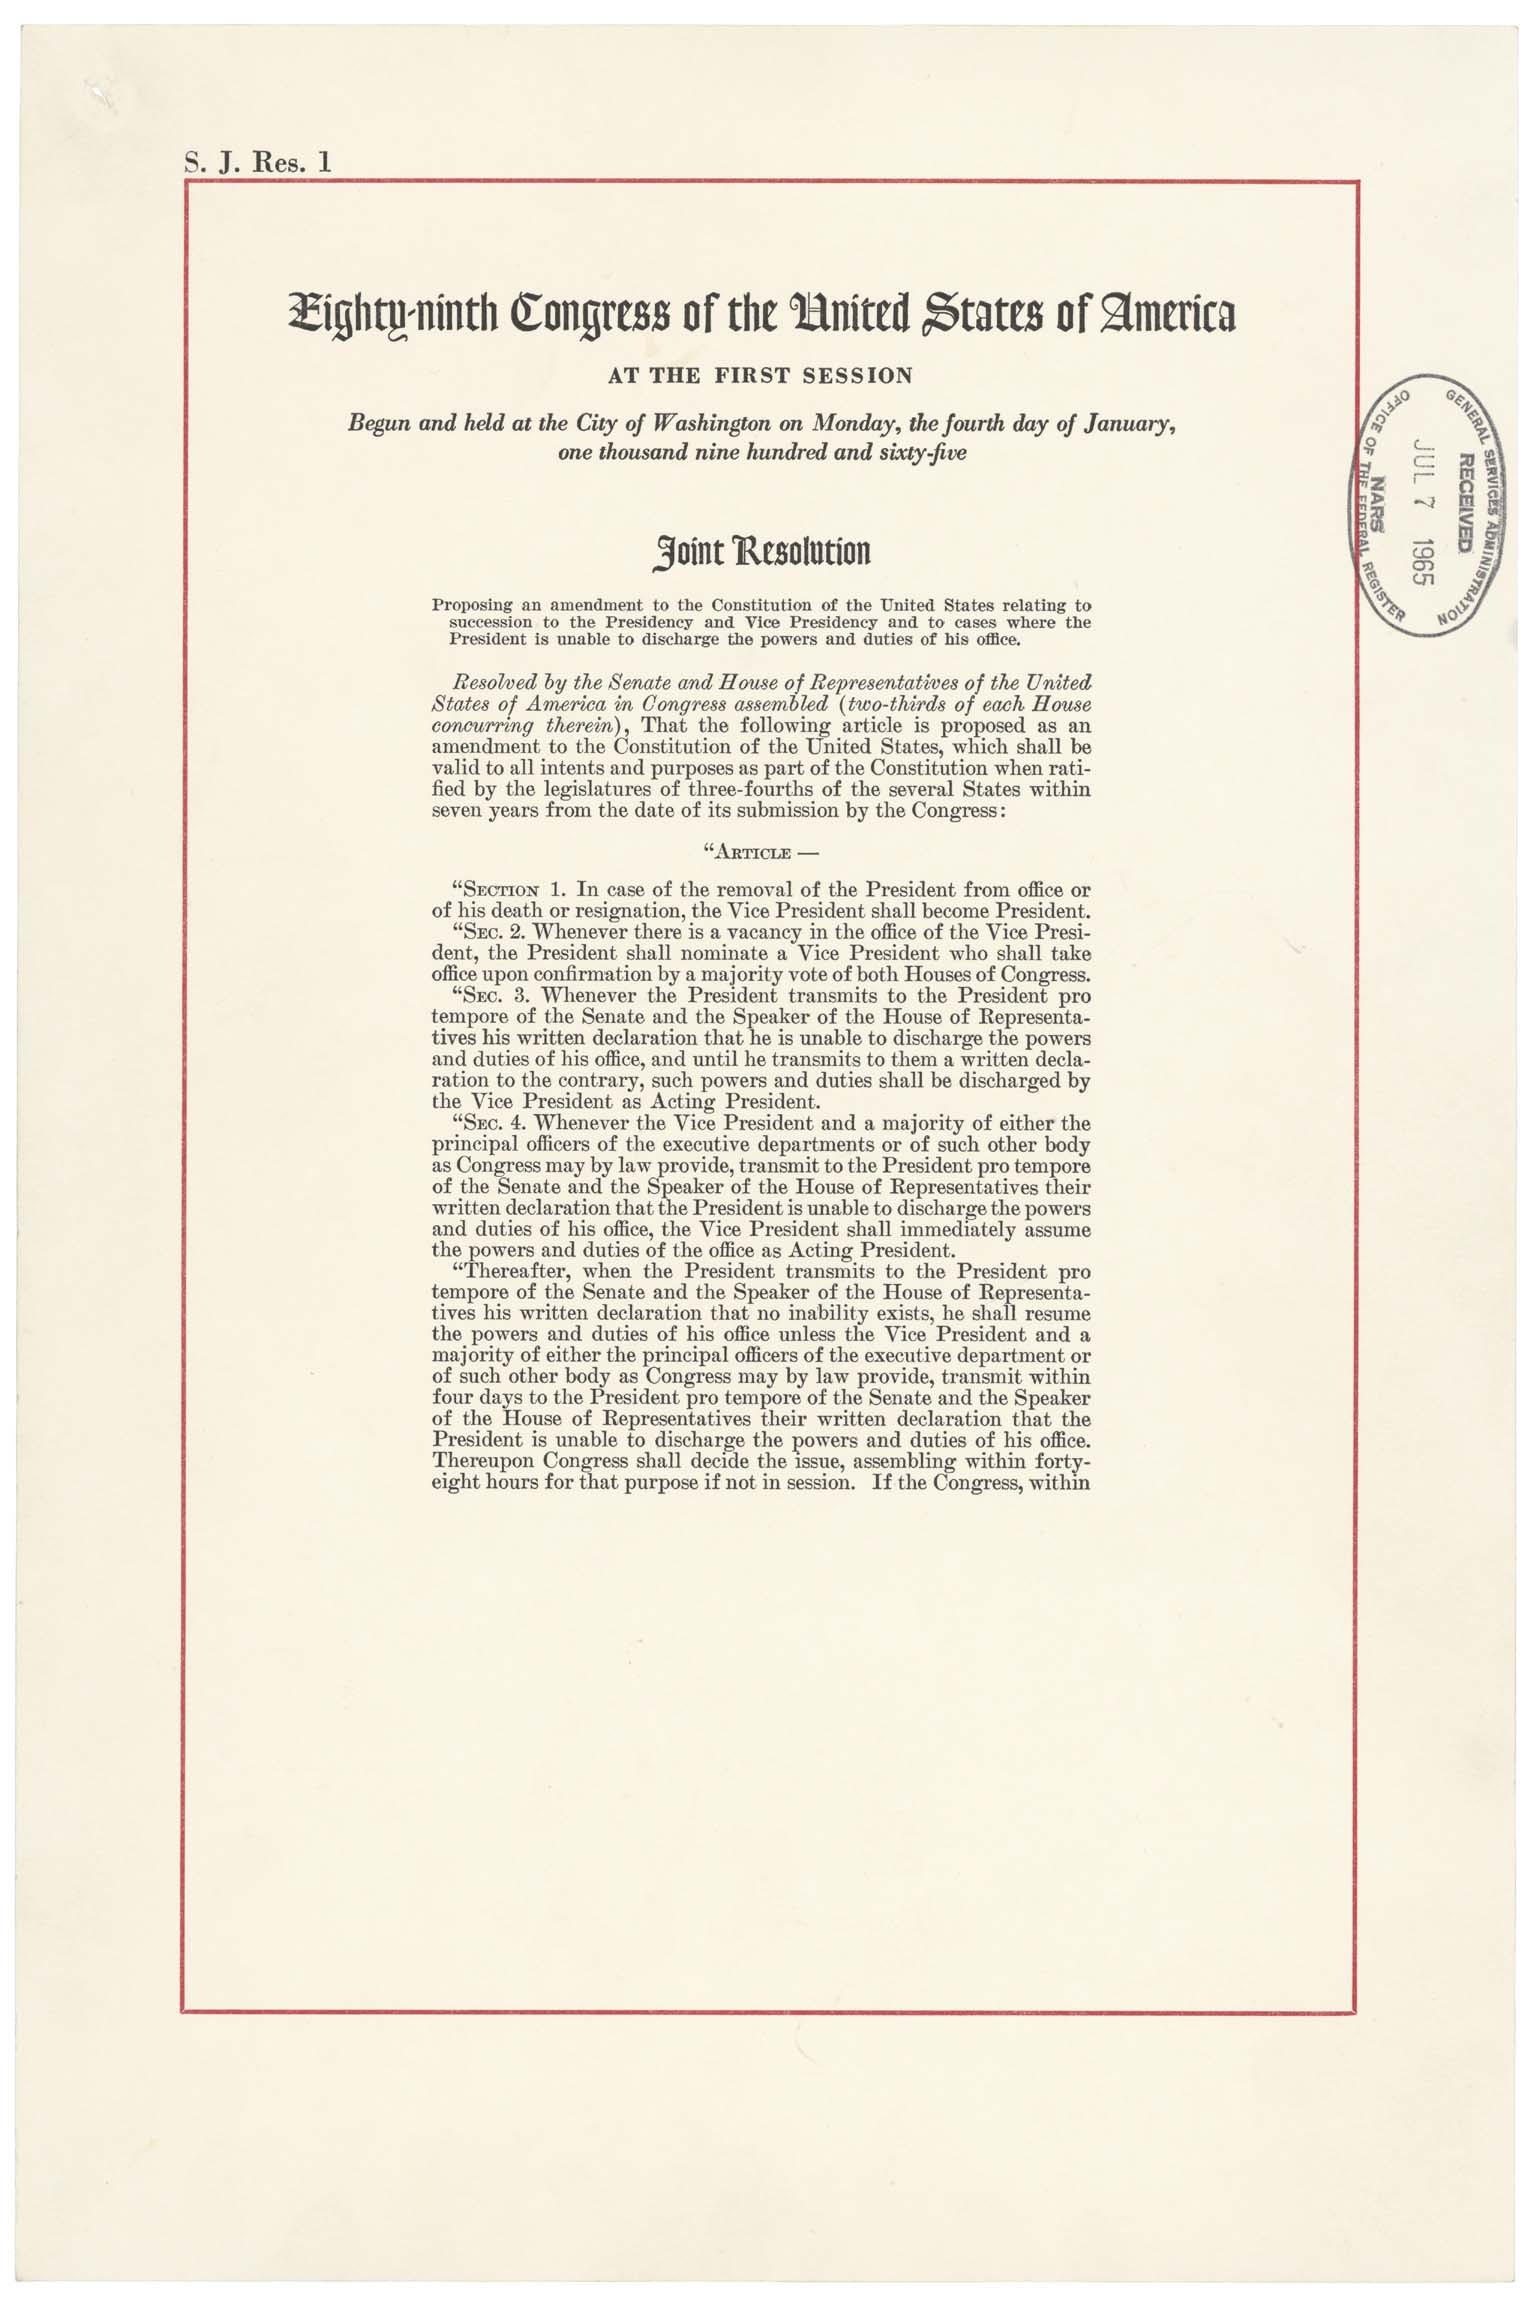 25th Amendment to the US Constitution - Page 1 of 2